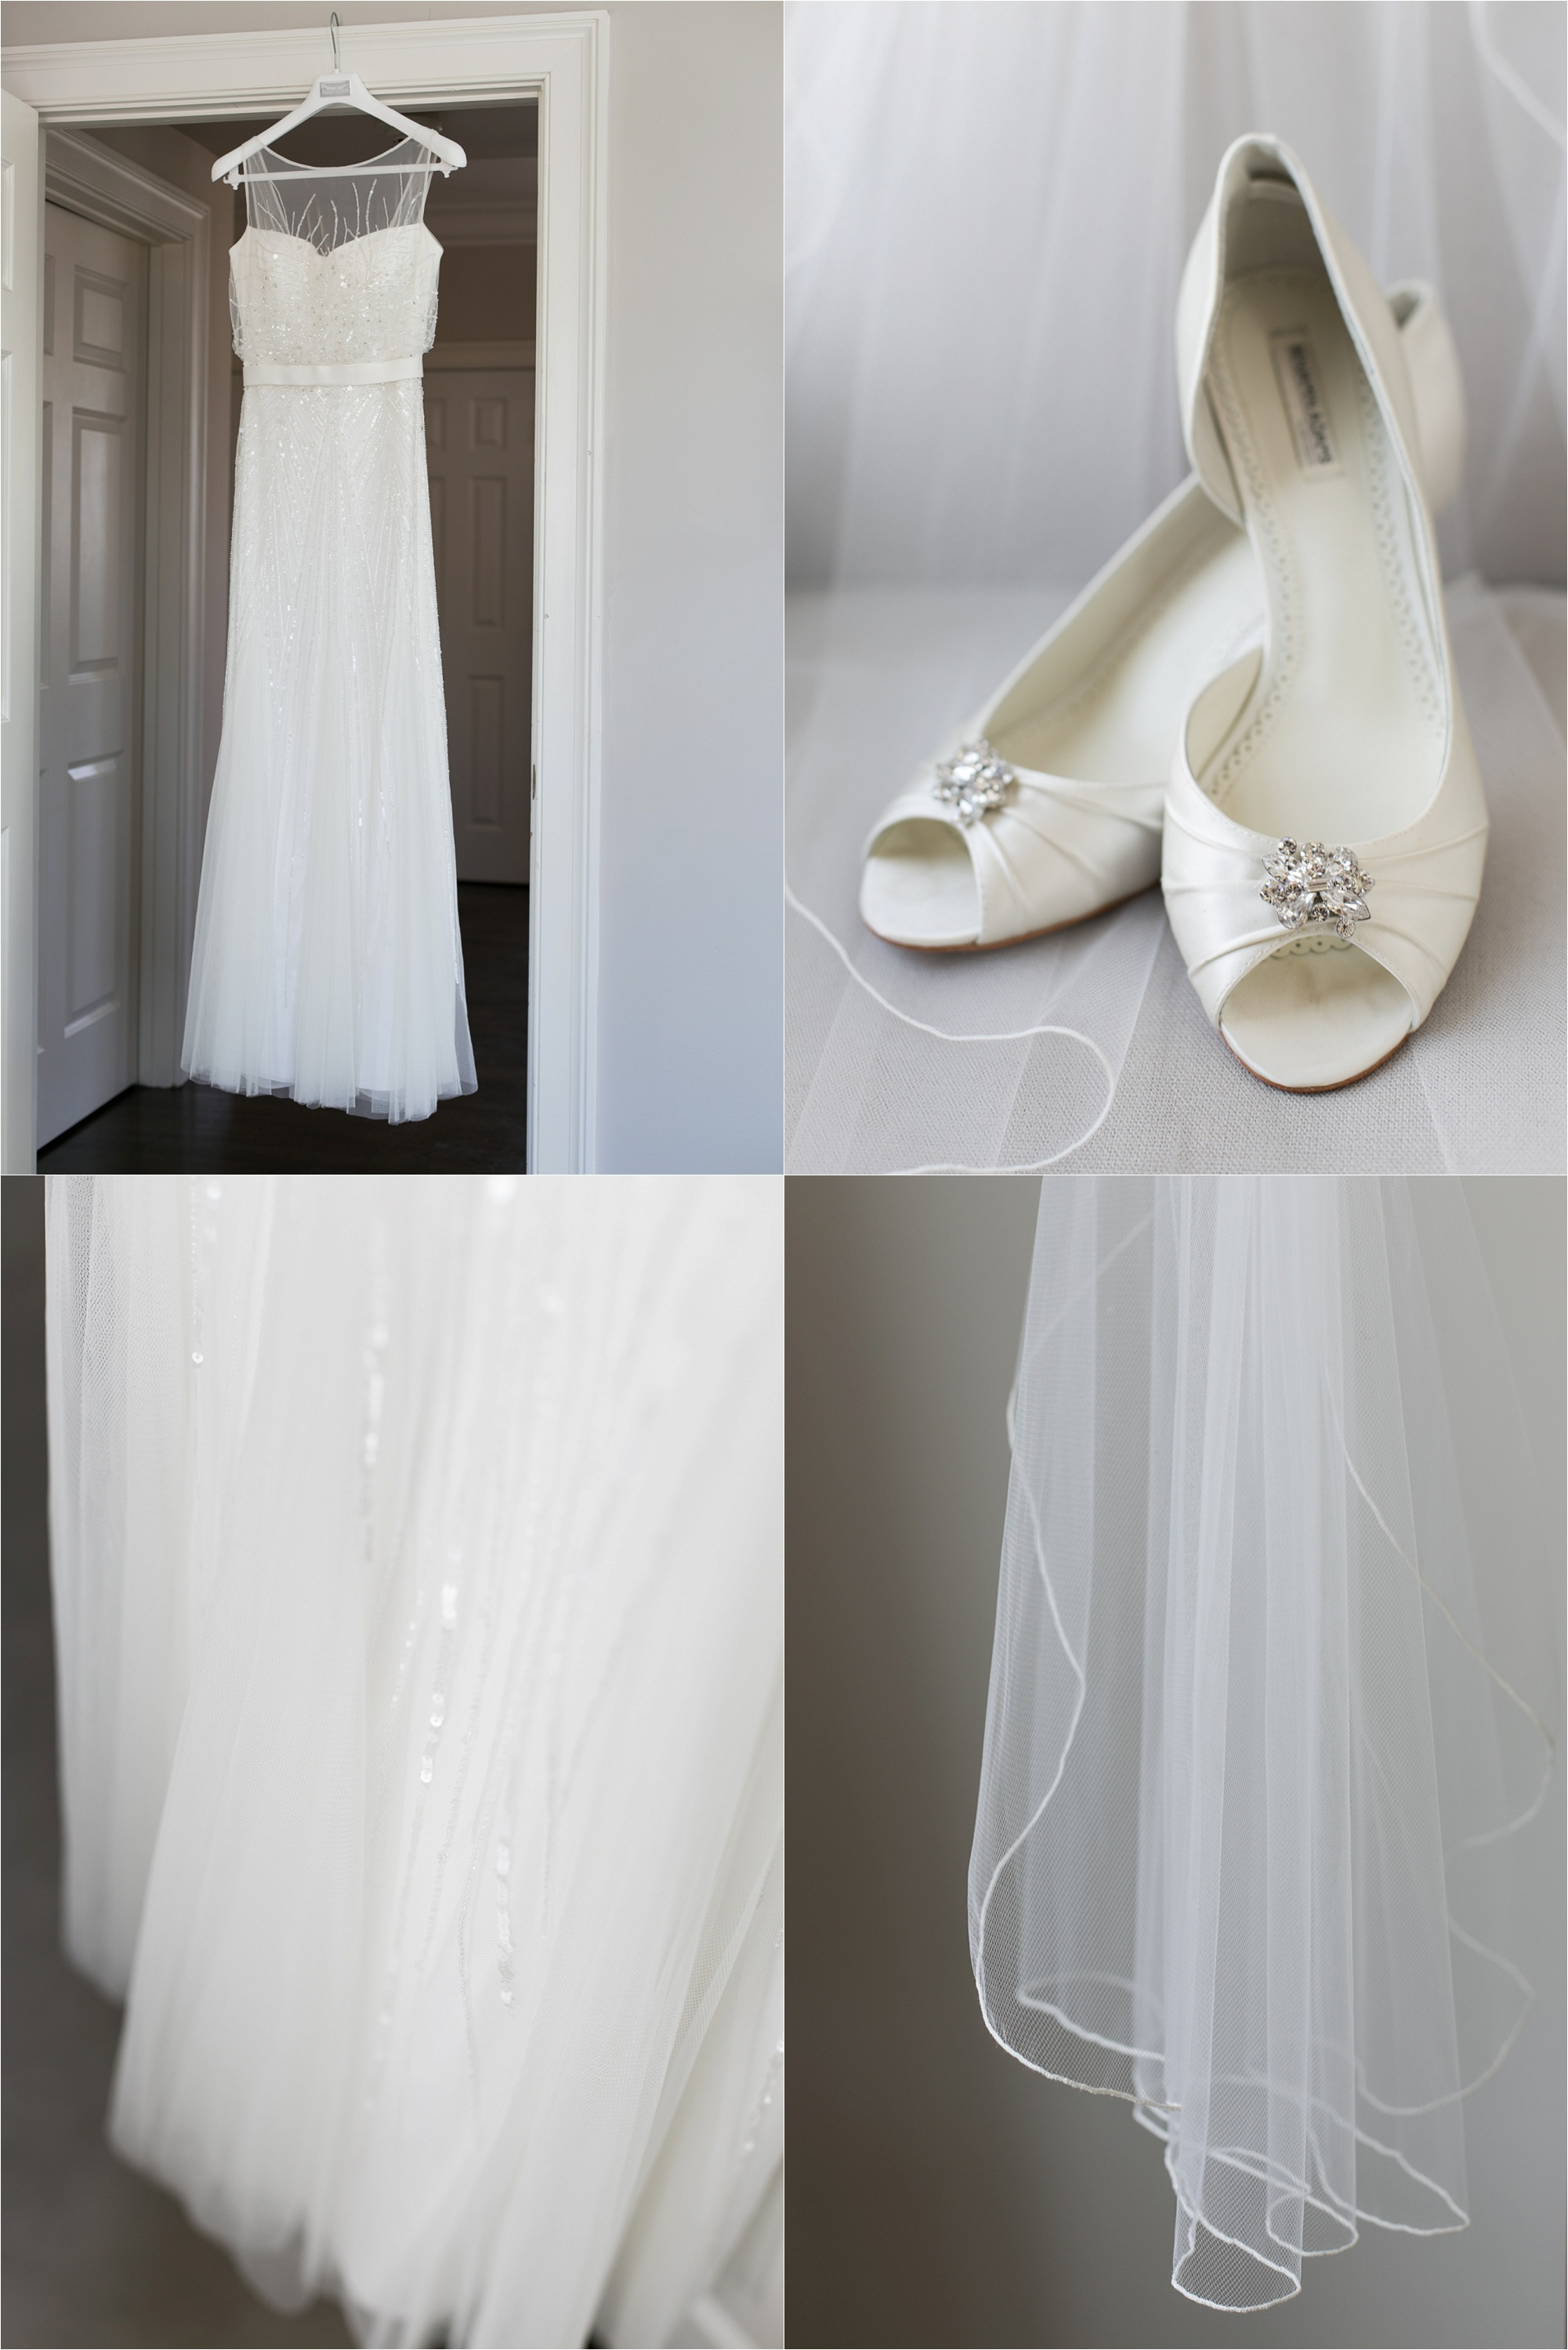 Photo of the brides dress, shoes, and veil